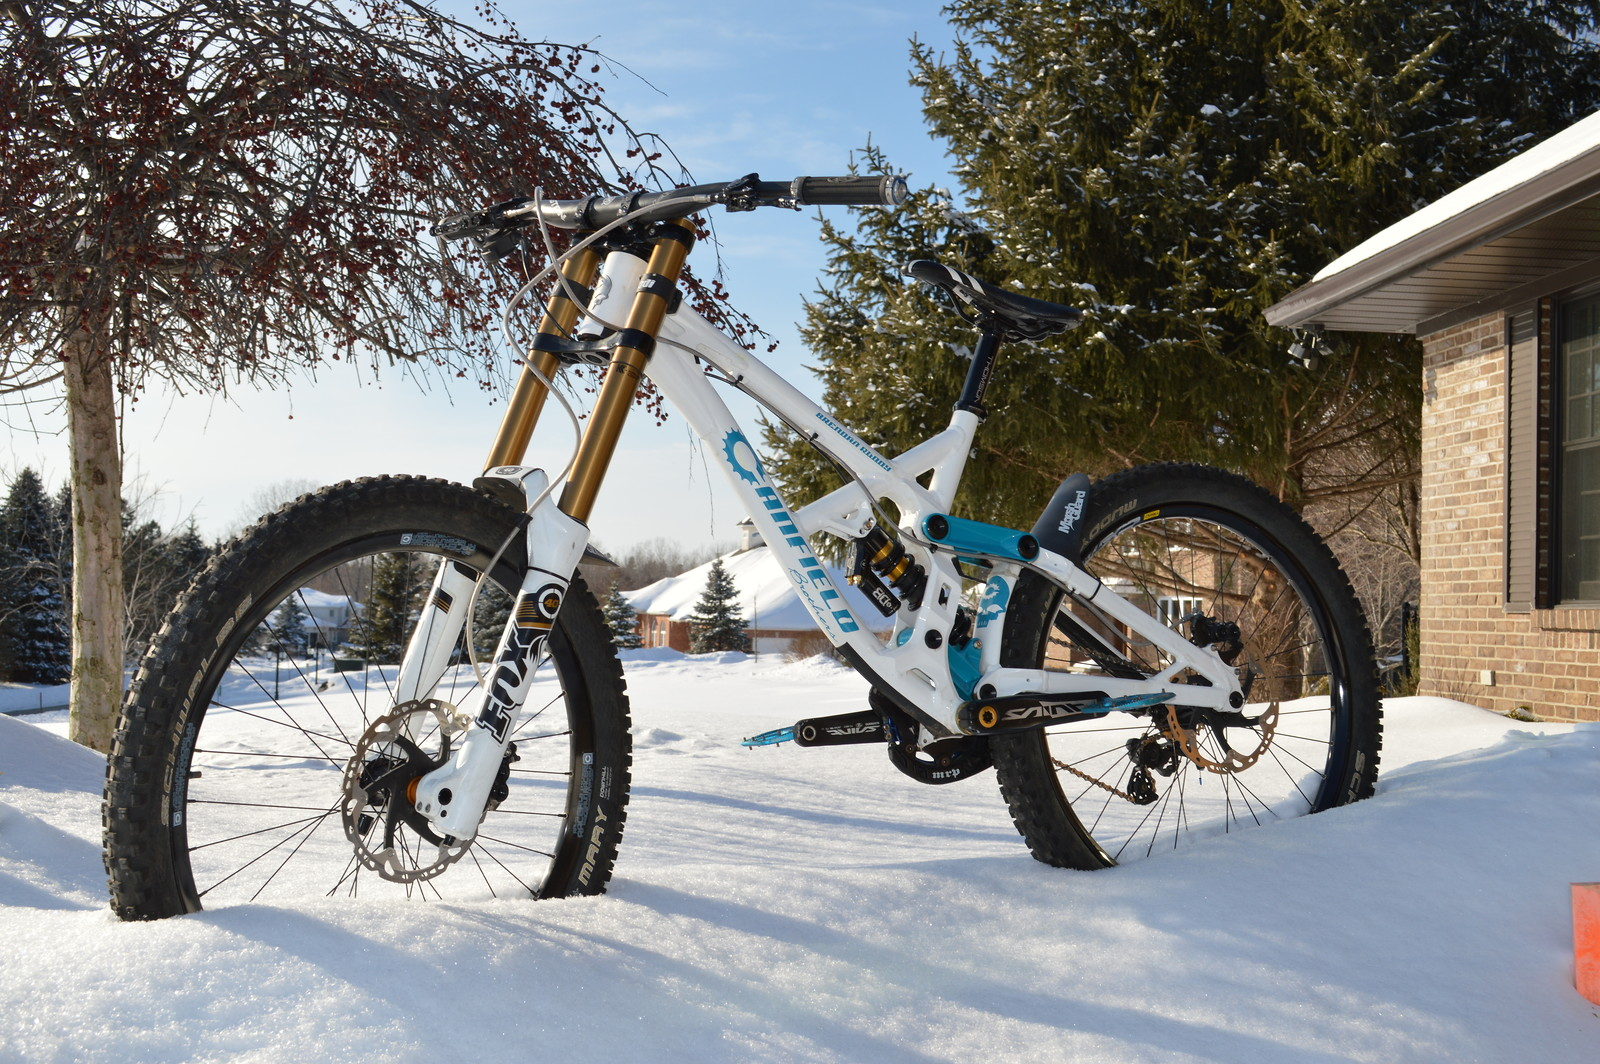 2013 Canfield Brothers Jedi white/turquoise